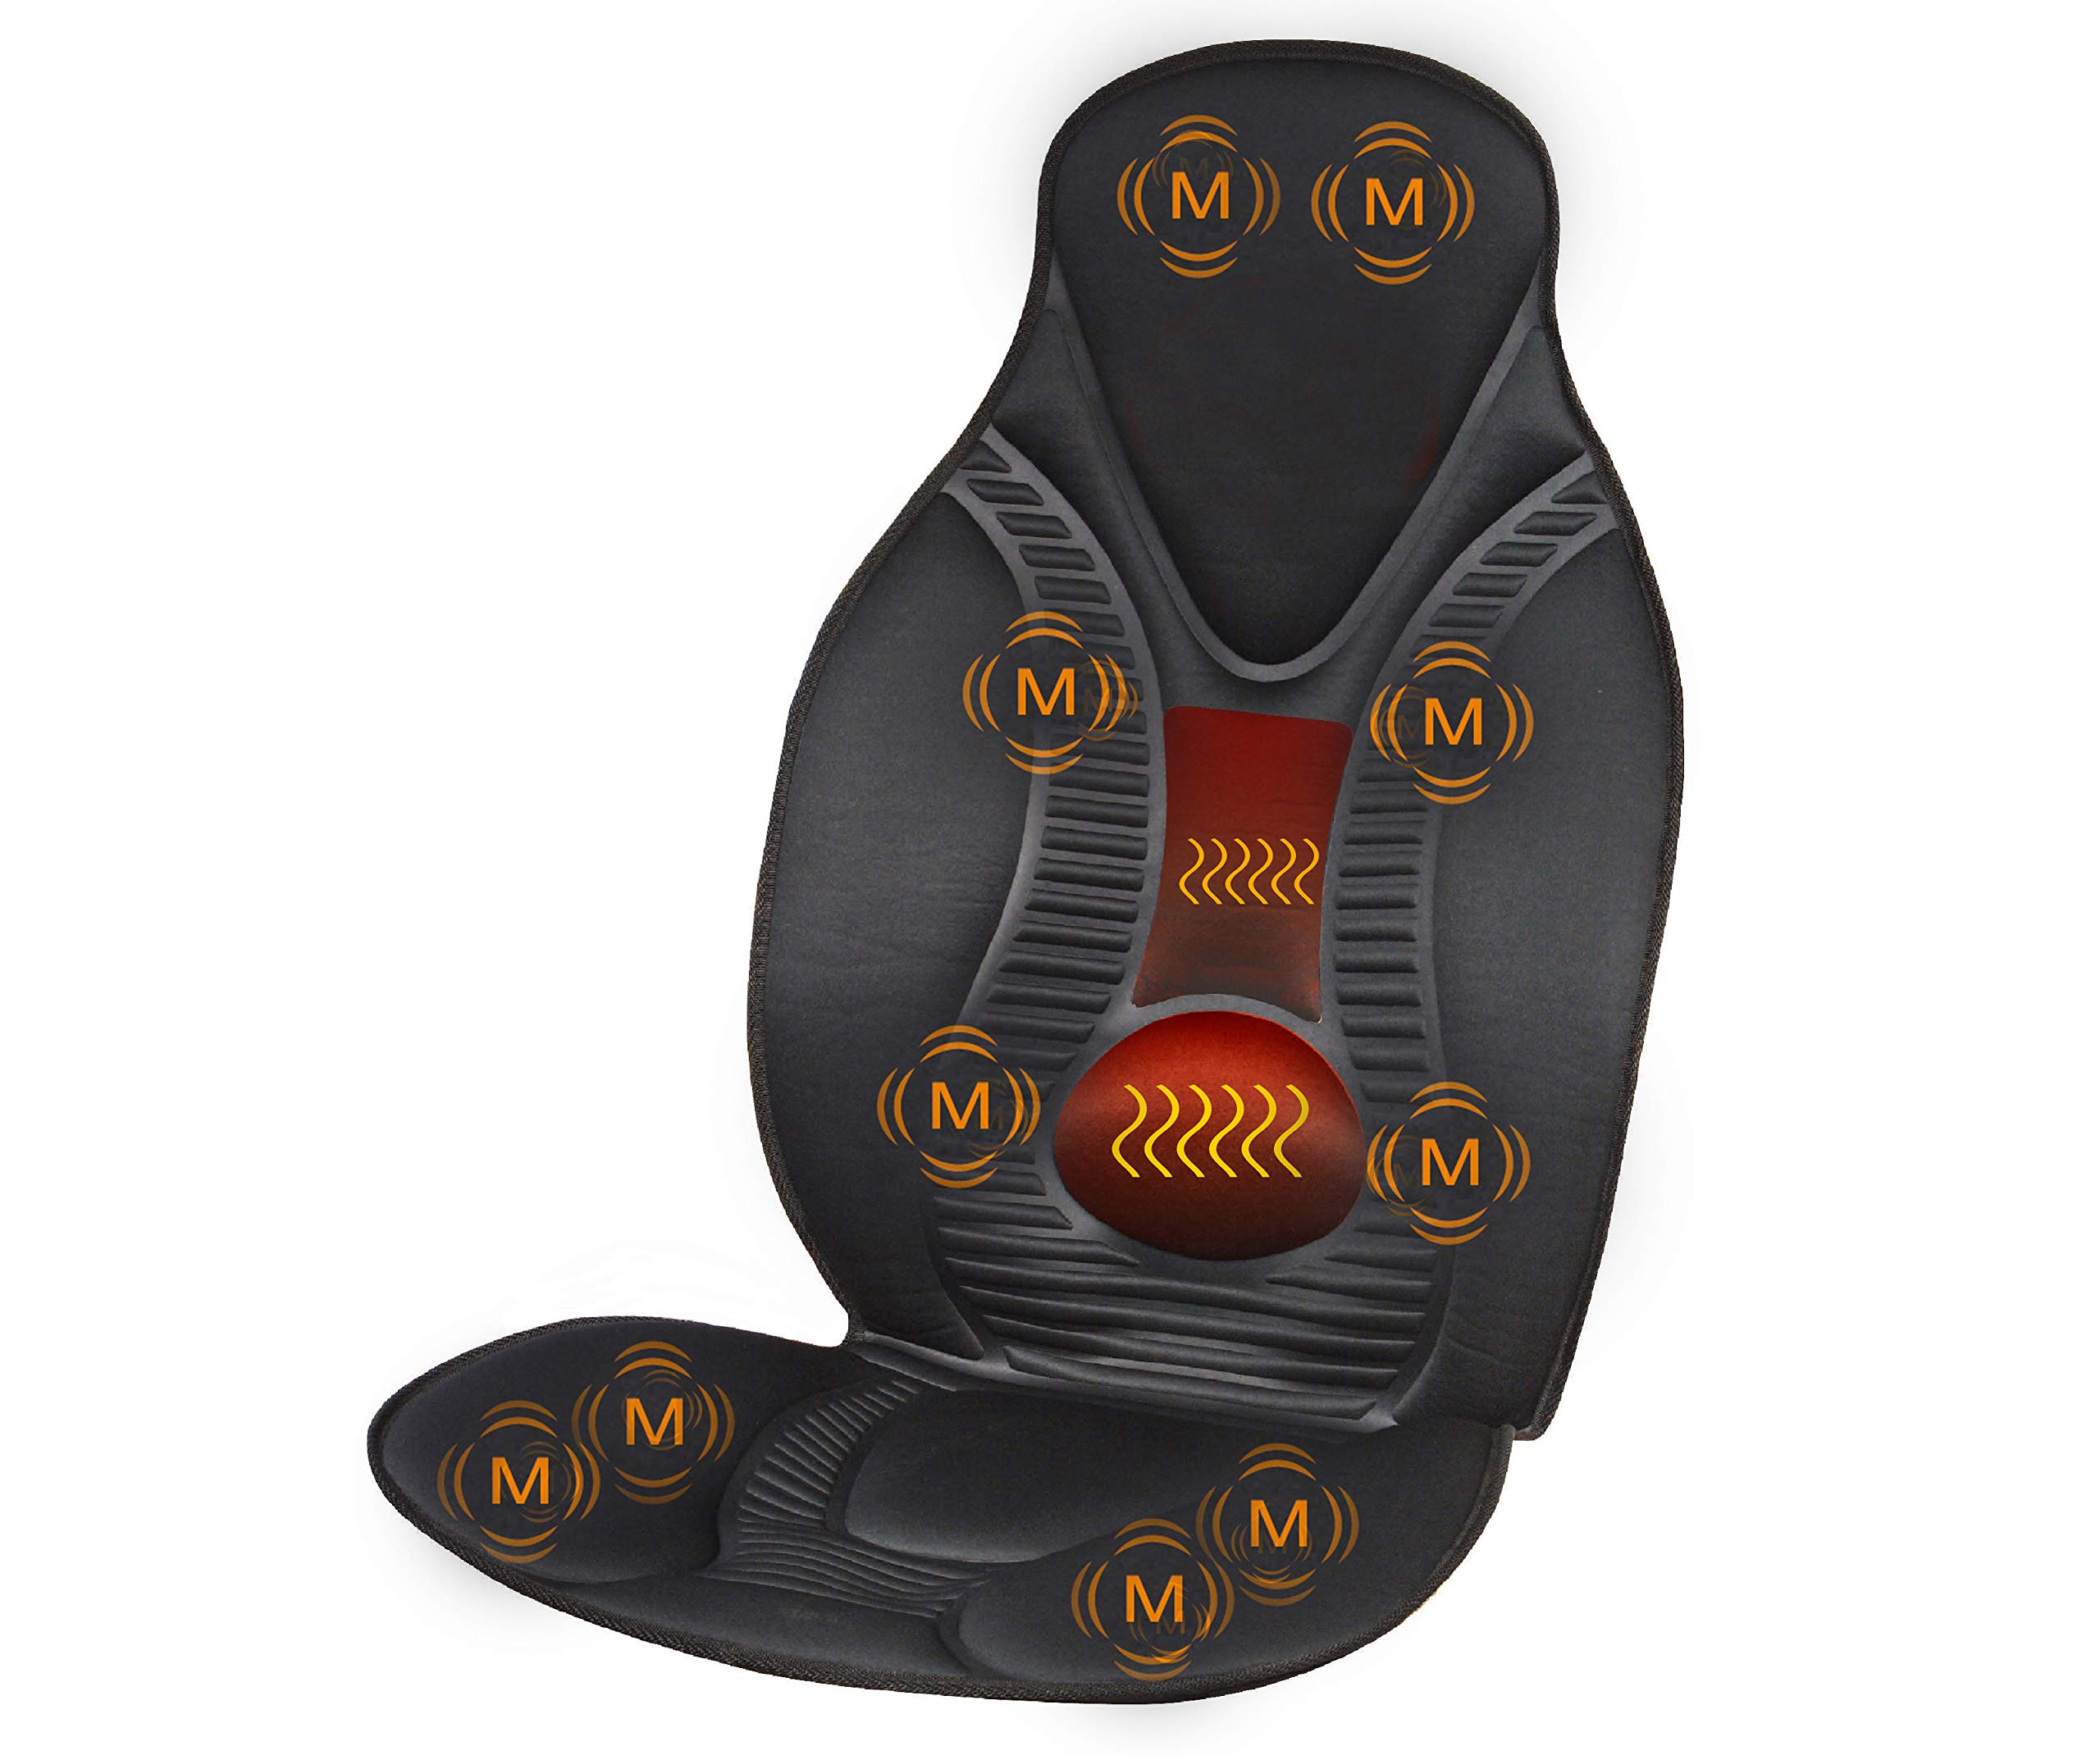 ویکالا · خرید  اصل اورجینال · خرید از آمازون · FIVE S FS8812 10 Motor Vibration Neck, Shoulder, Back, Thigh Massage Seat Cushion, Massager with Heat (Black) wekala · ویکالا